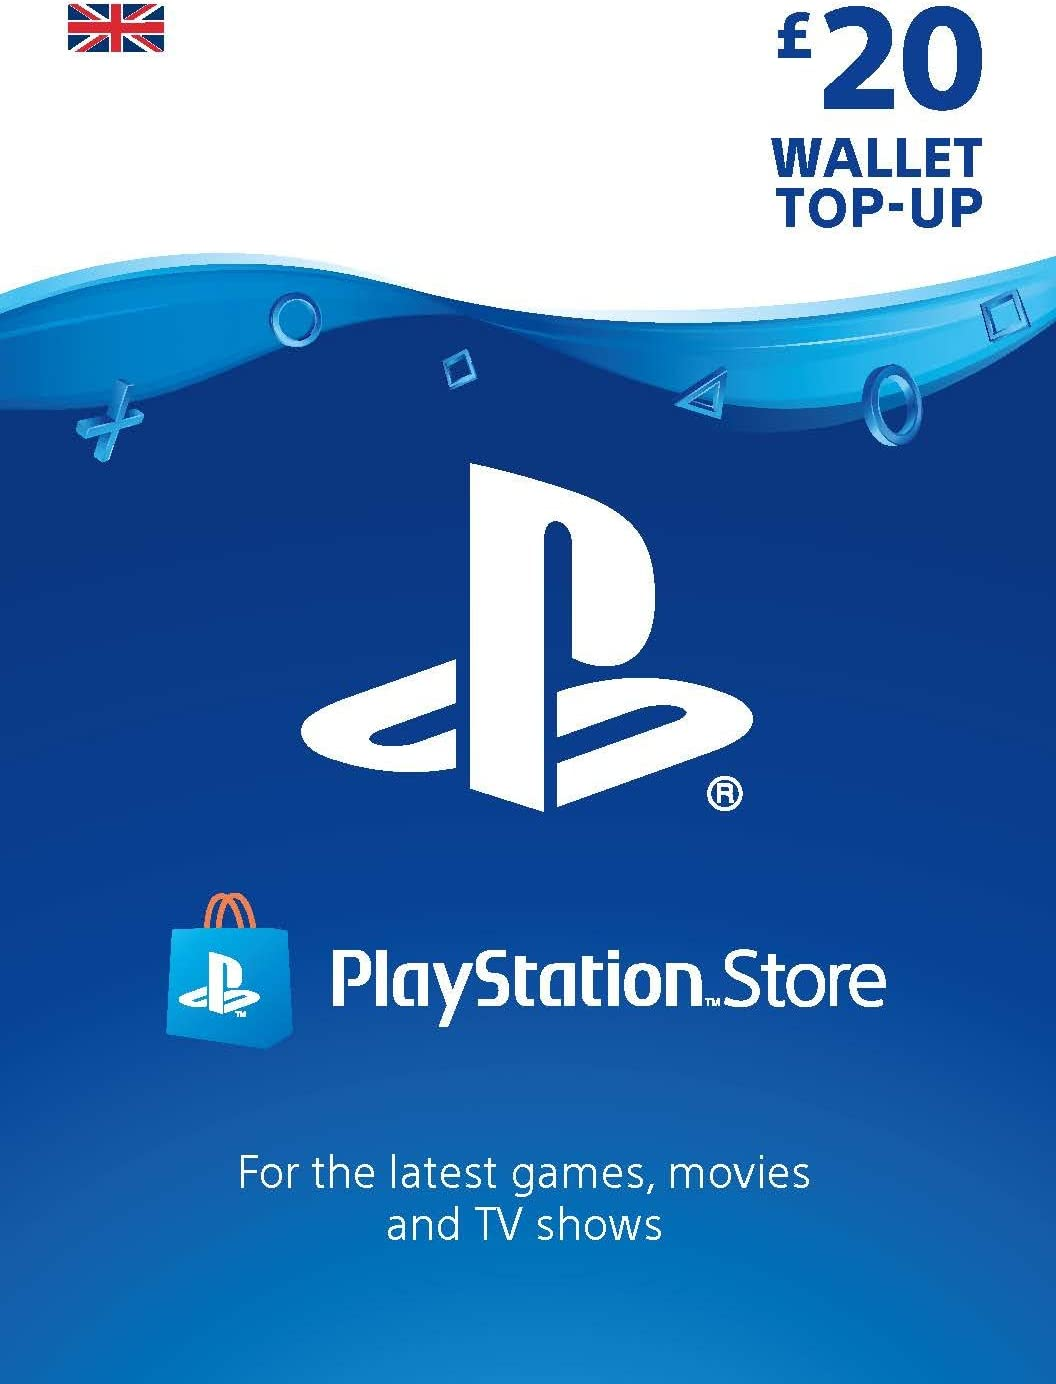 Playstation Psn Card 10 Gbp Wallet Top Up Psn Download Code Uk